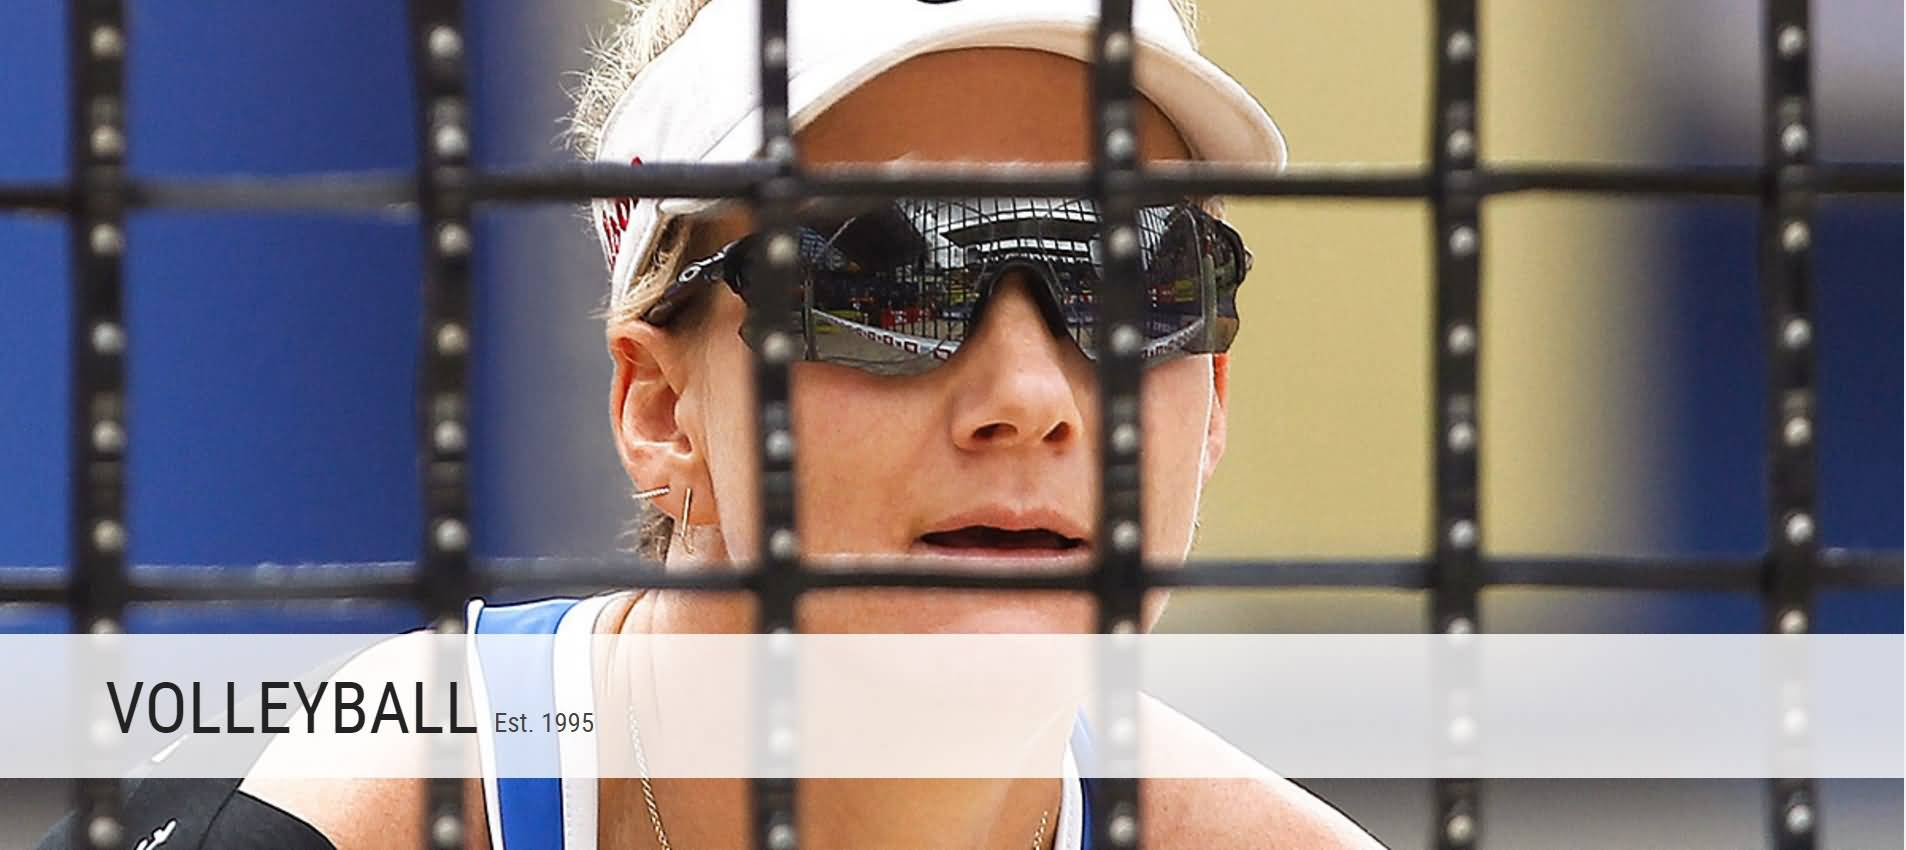 Oakley Volleyball Athletes Kerri Walsh Jennings Phil Dalhausser